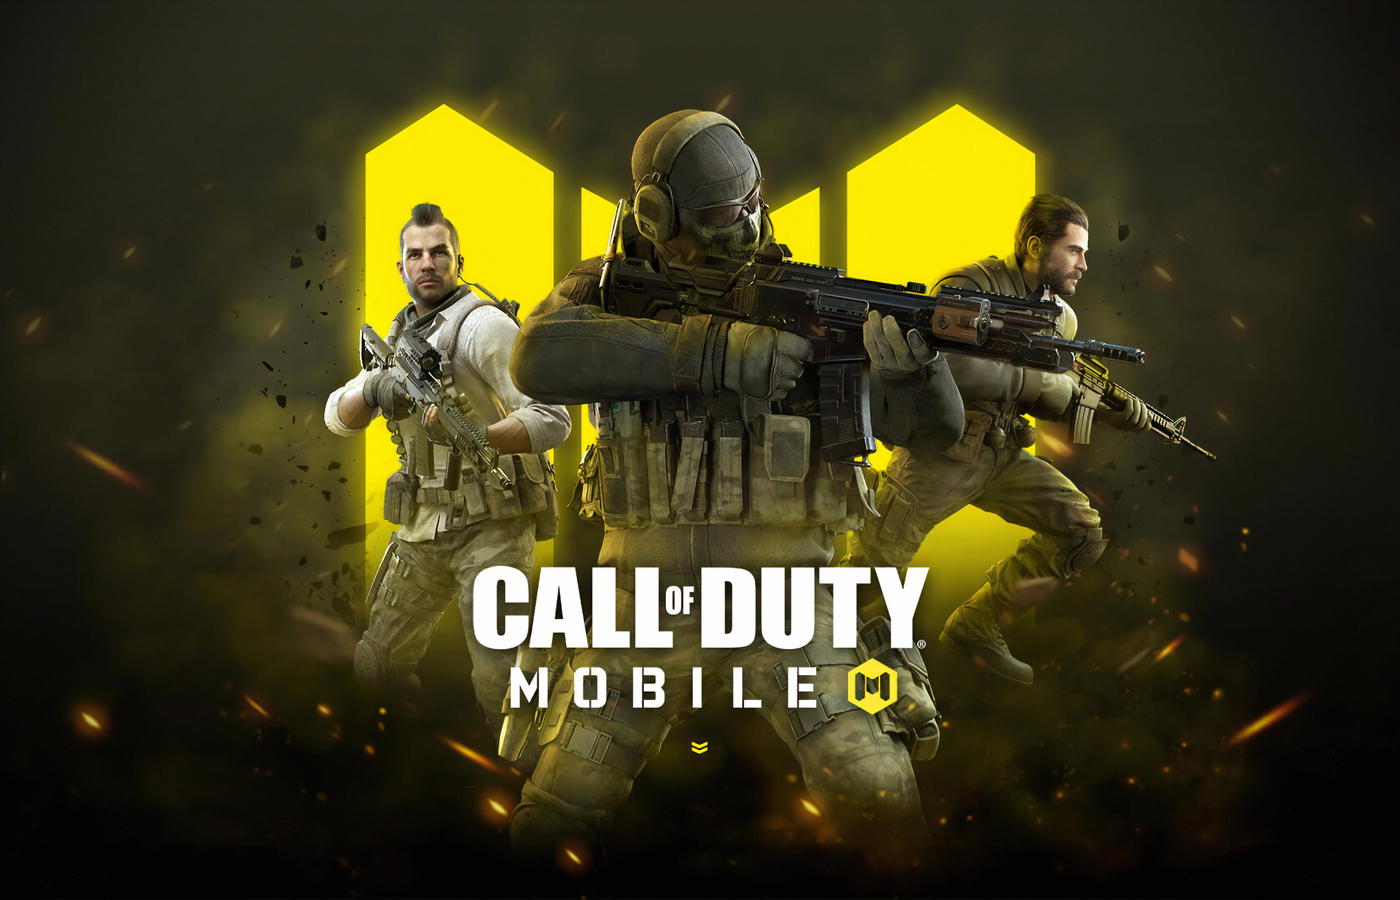 call-of-duty-mobile-4k-2019-he.jpg